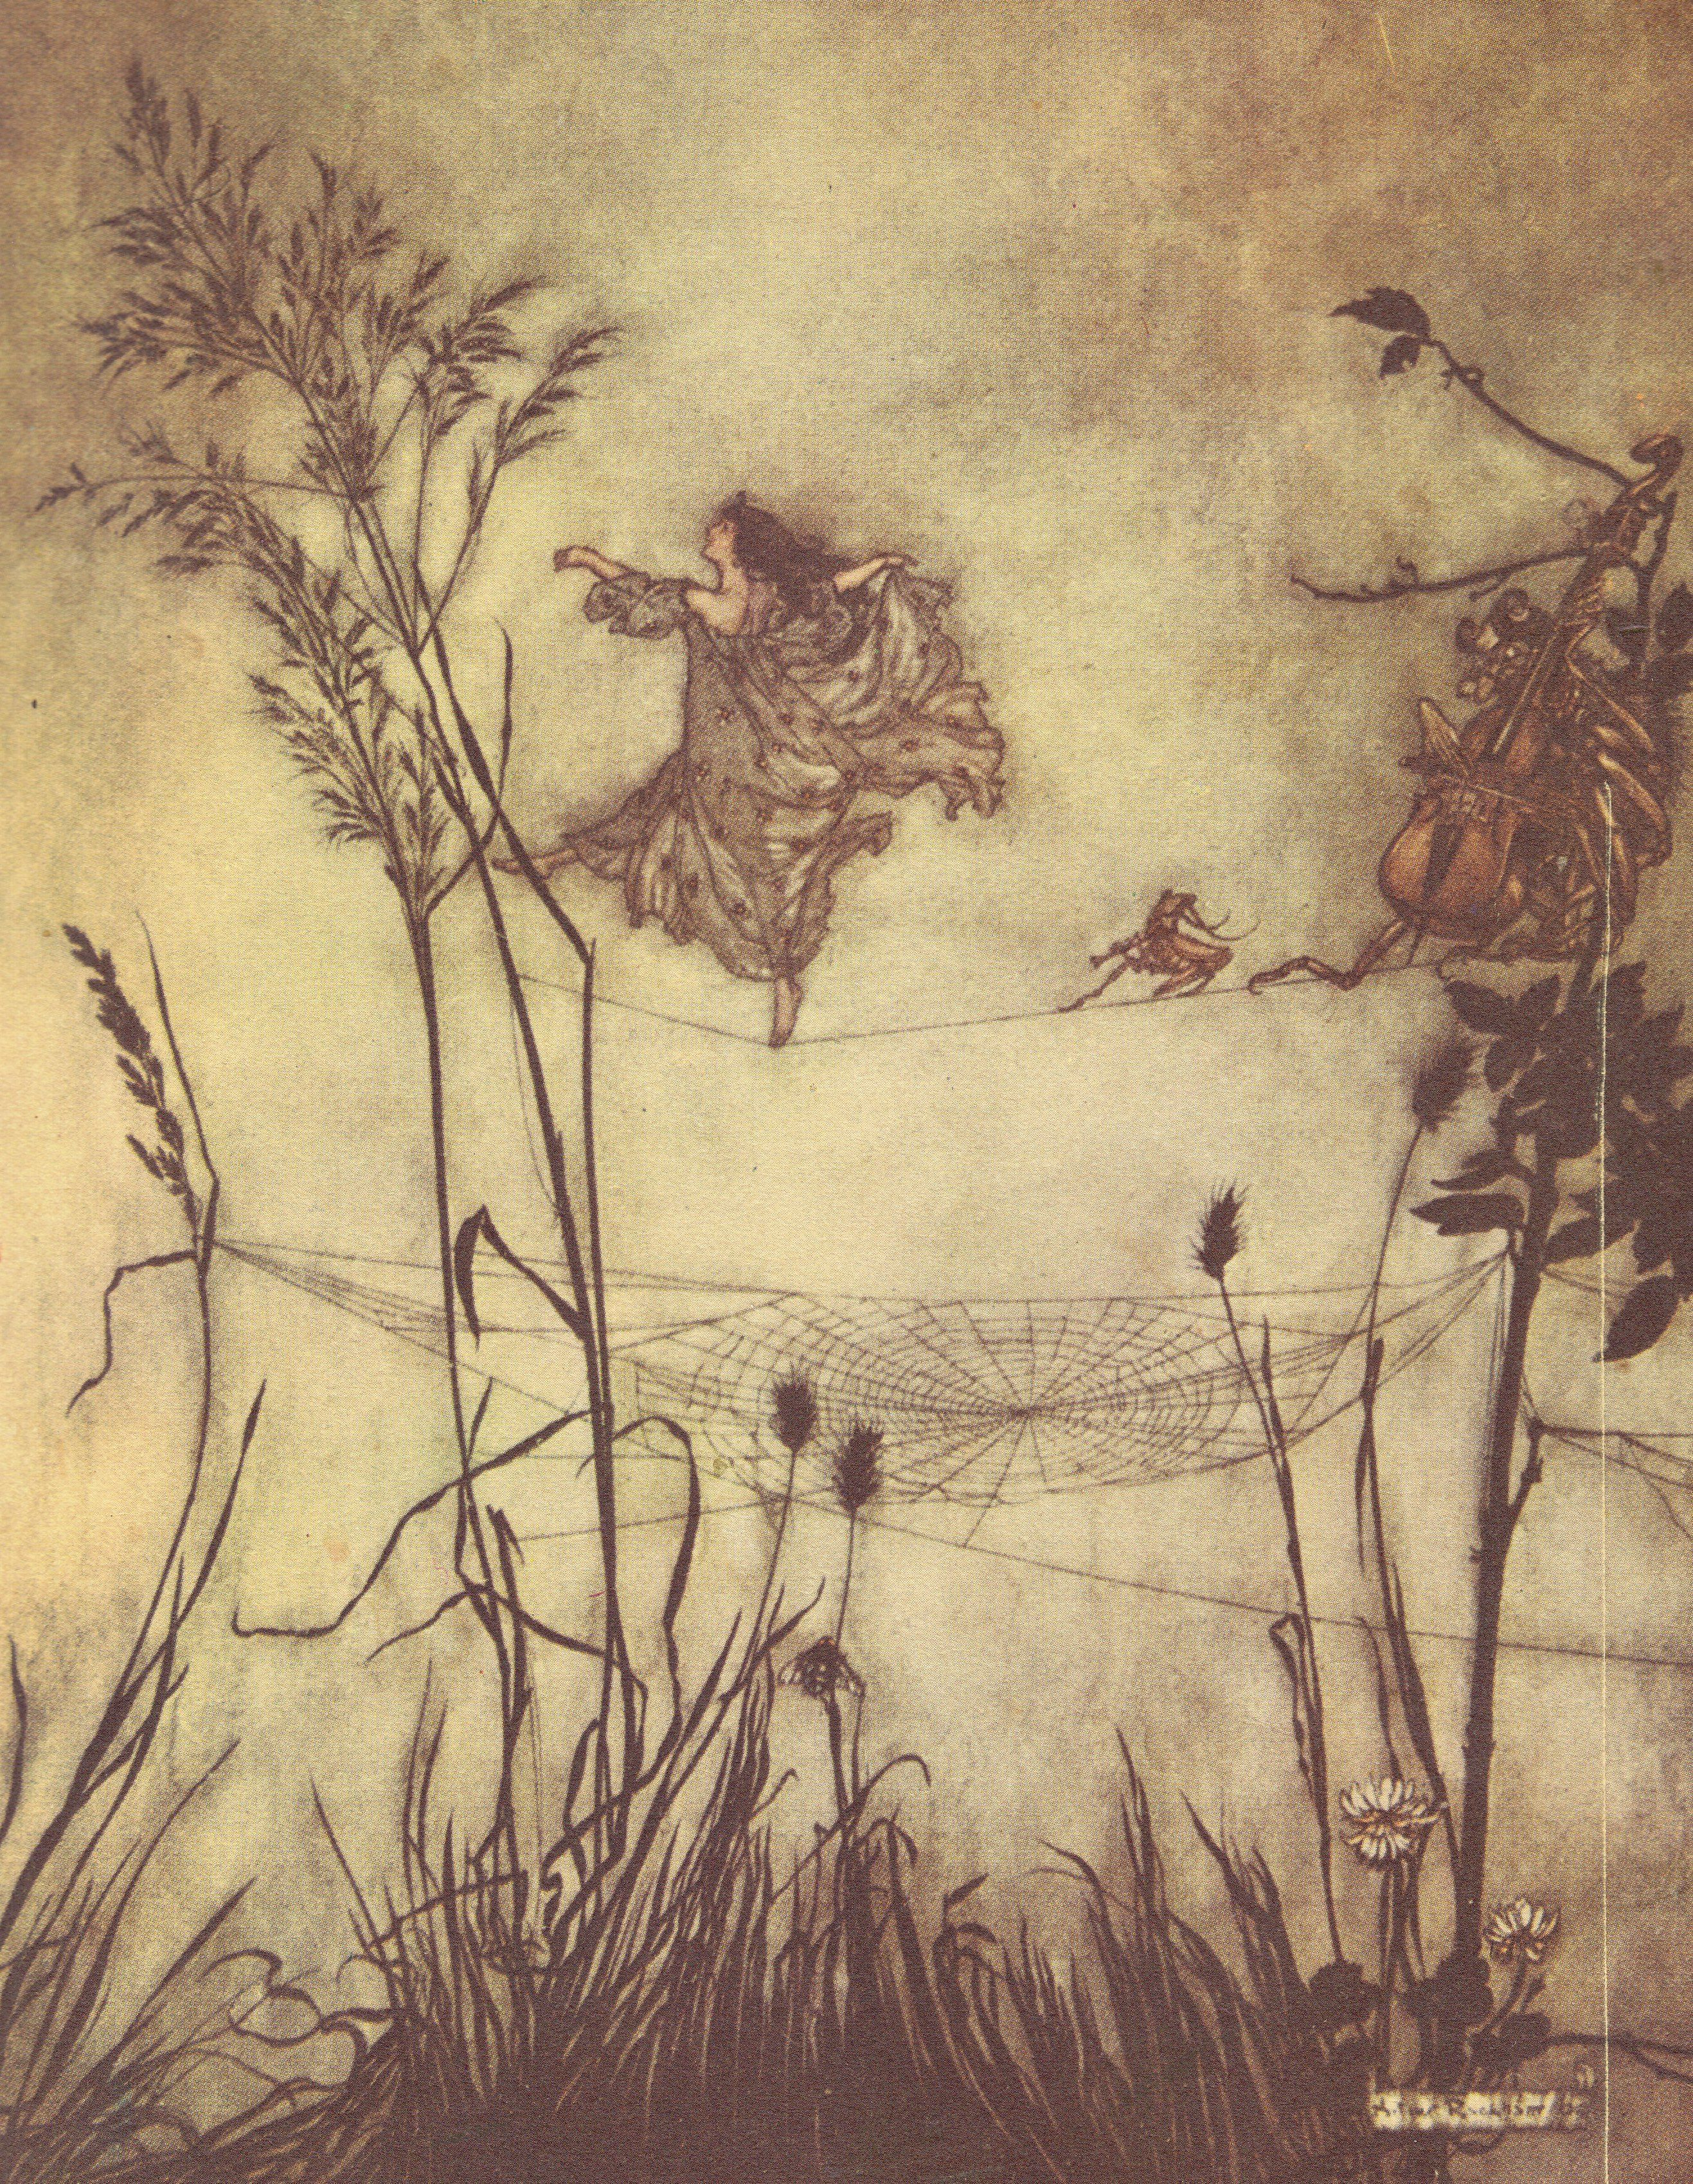 """Fairies Are Exquisite Dancers"" by Arthur Rackham. I've saved this for decades and no longer have the foggiest where it came from or how I came upon it. I just like looking at it."